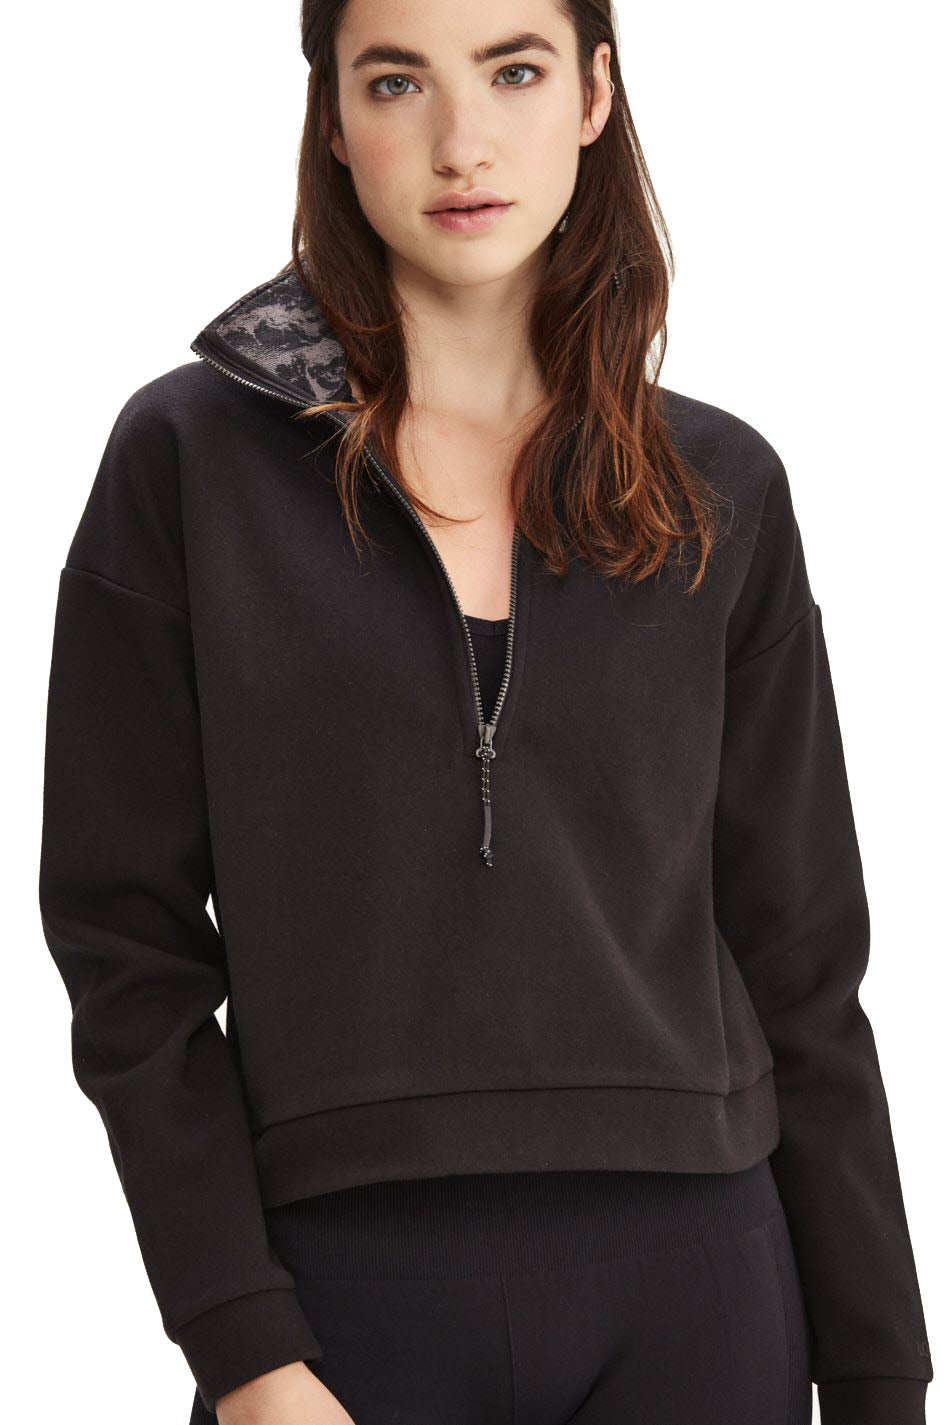 Lolë - Unite Zip Top Pullover  (LSW3326, Black)